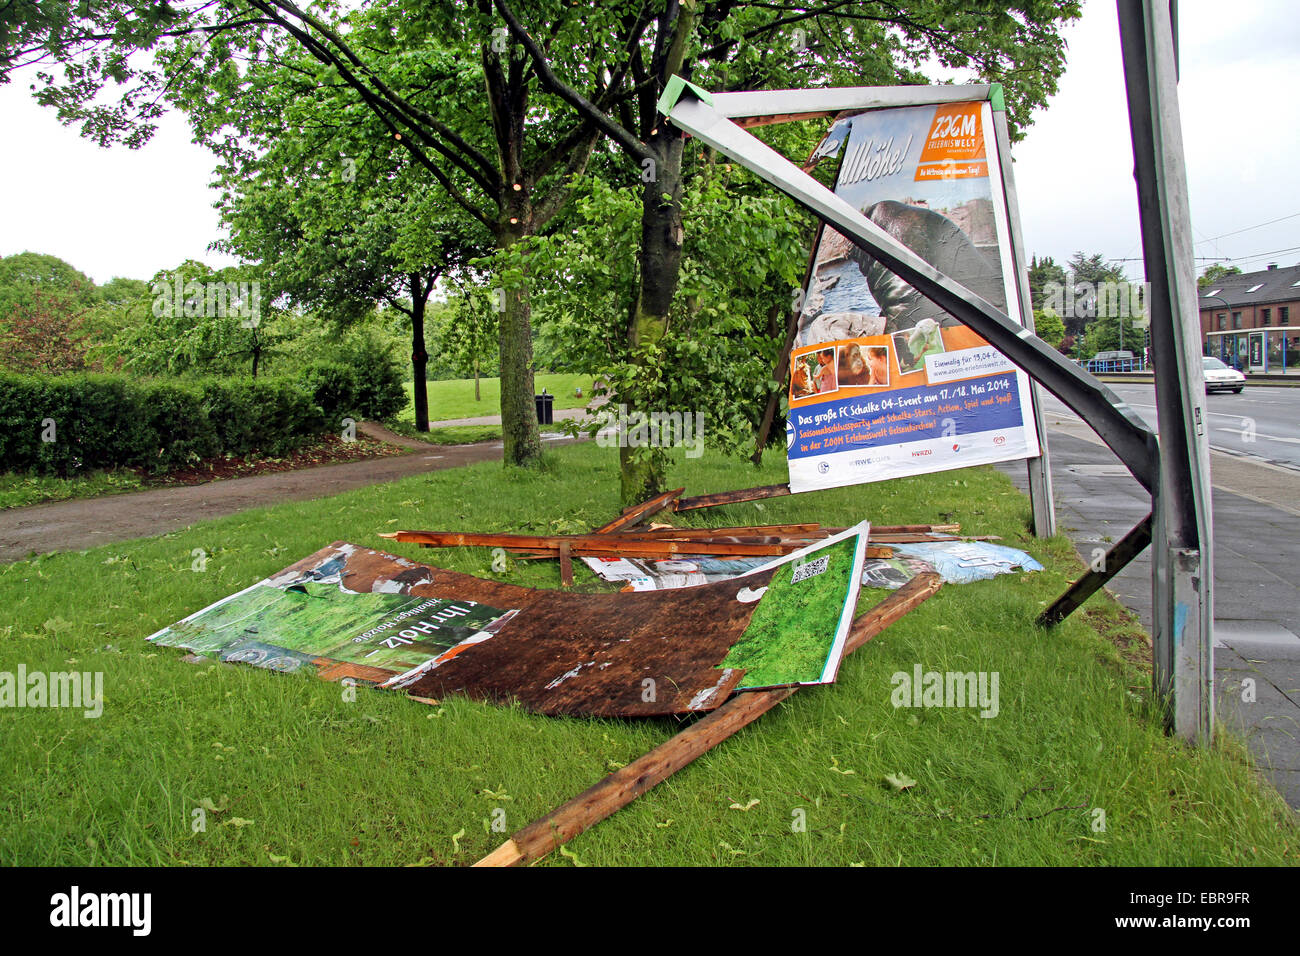 destroyed advertisement board after squall, Germany - Stock Image